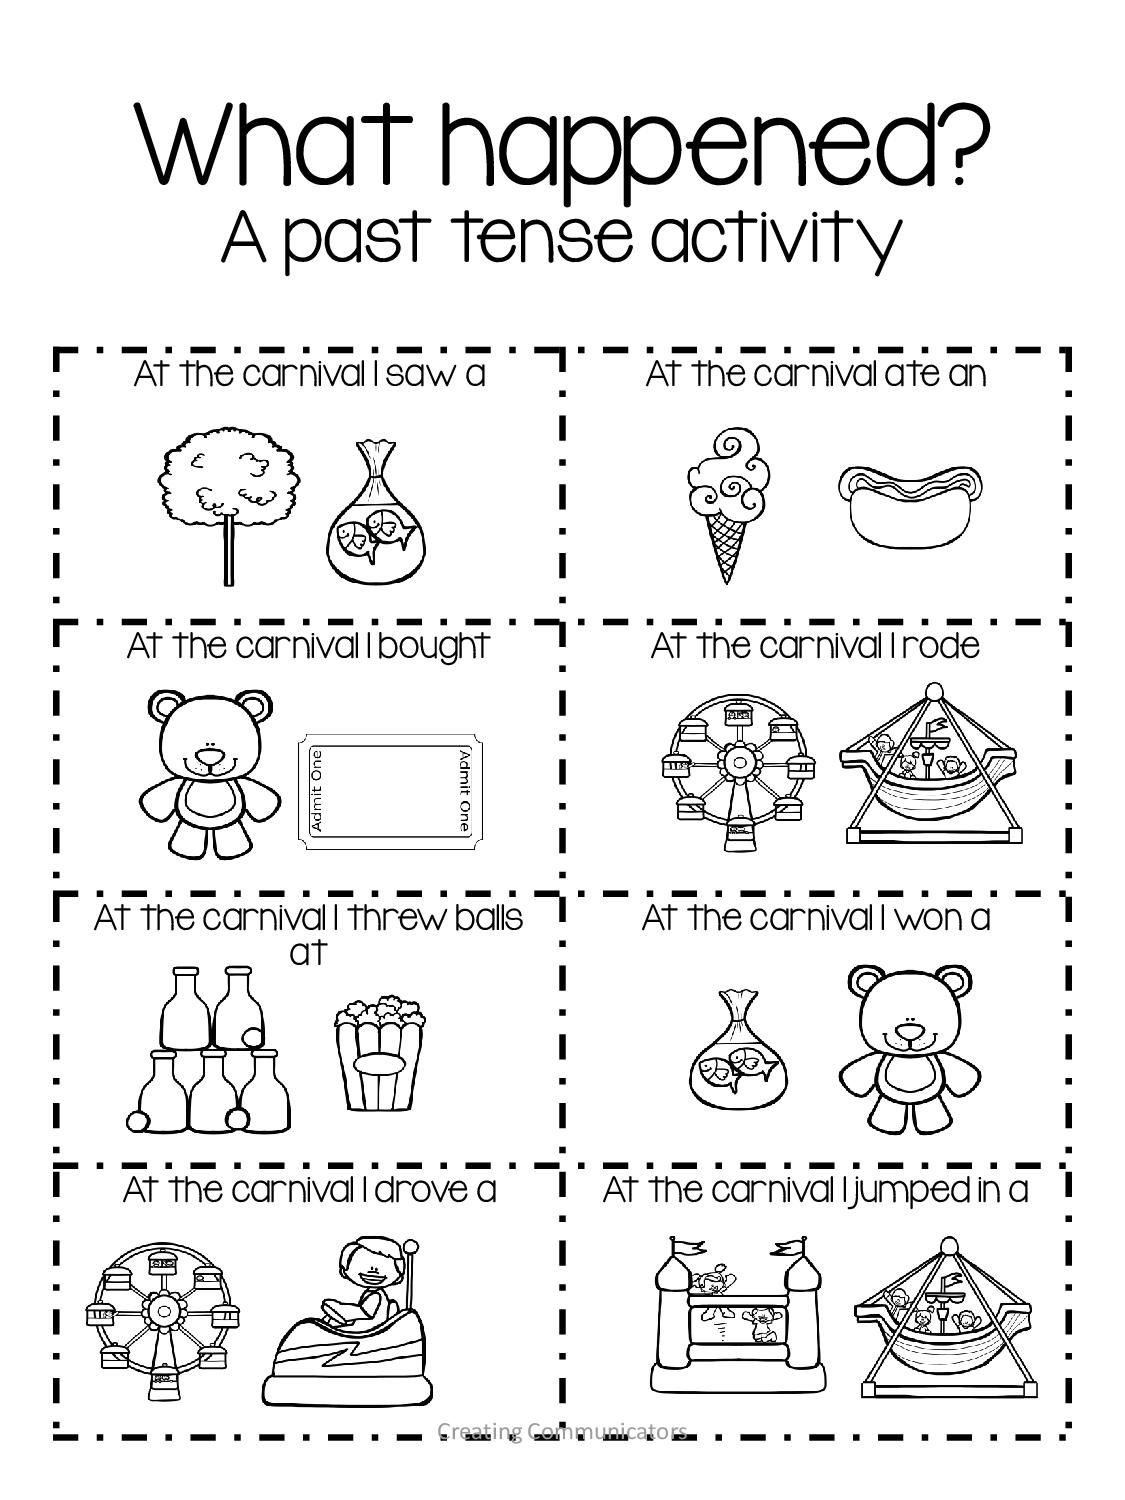 Carnival Language Activities on Pronoun Worksheets For Kids